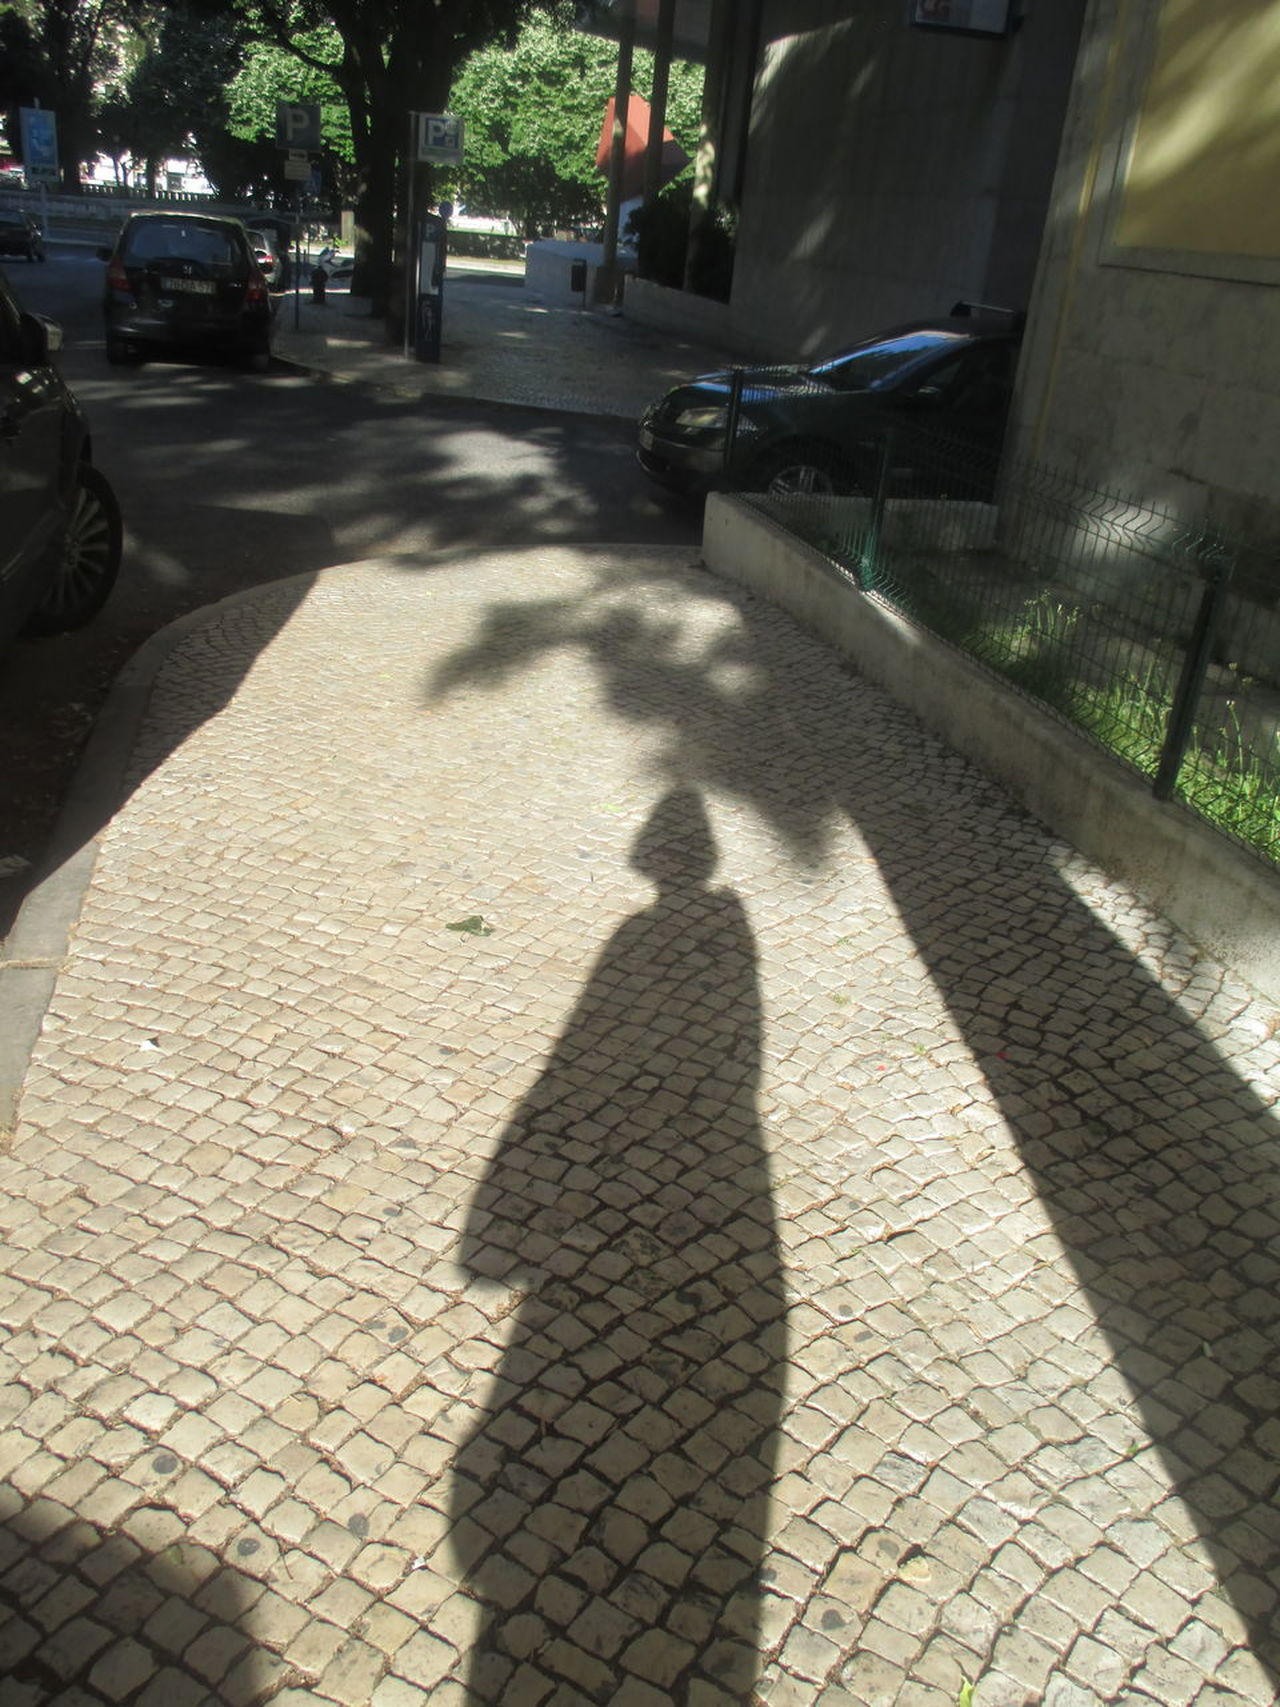 Beautiful Shadow Car City Clear Shadow Cobblestone Day Detail Detail From A Park Ellegant Shadow Focus On Shadow Loneliness Mystery One Person Outdoors Path Forward People Real People Shadow Shadow And Light Shadow Of A Tree Shadow Of A Woman Shadow On The Cobblestone Pavement Street Sunlight Sunny Day